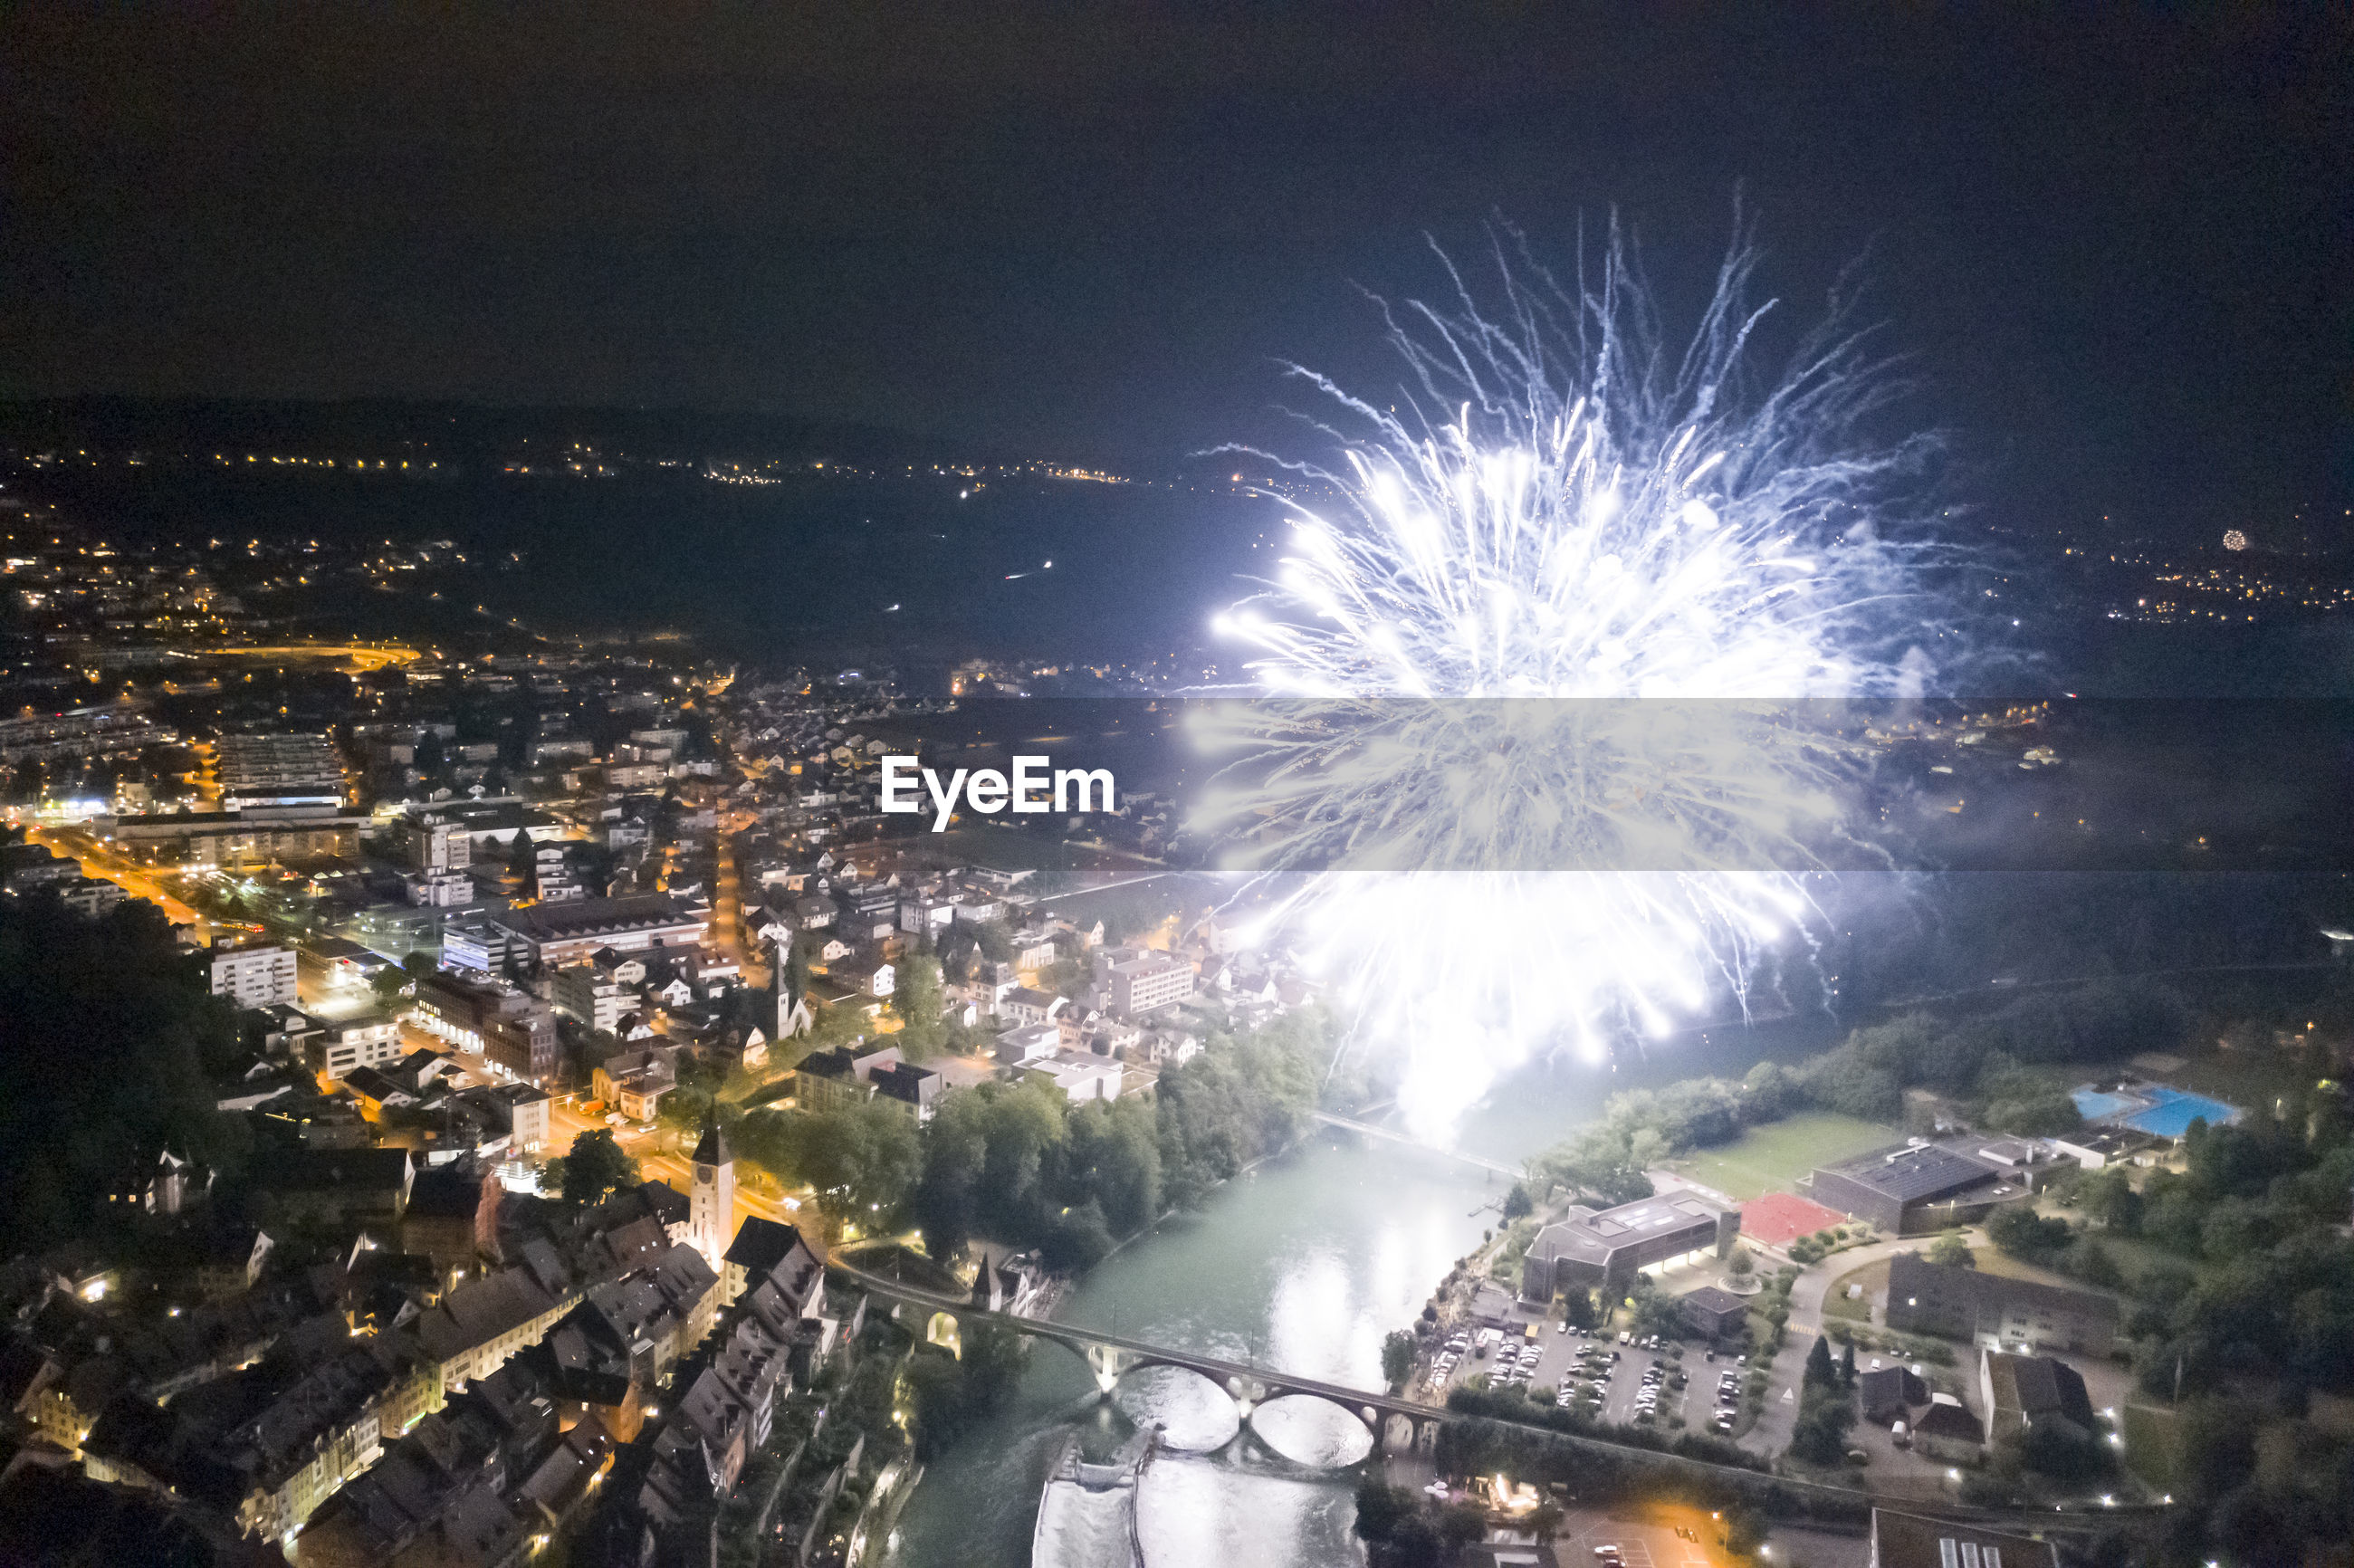 HIGH ANGLE VIEW OF FIREWORK DISPLAY AT NIGHT